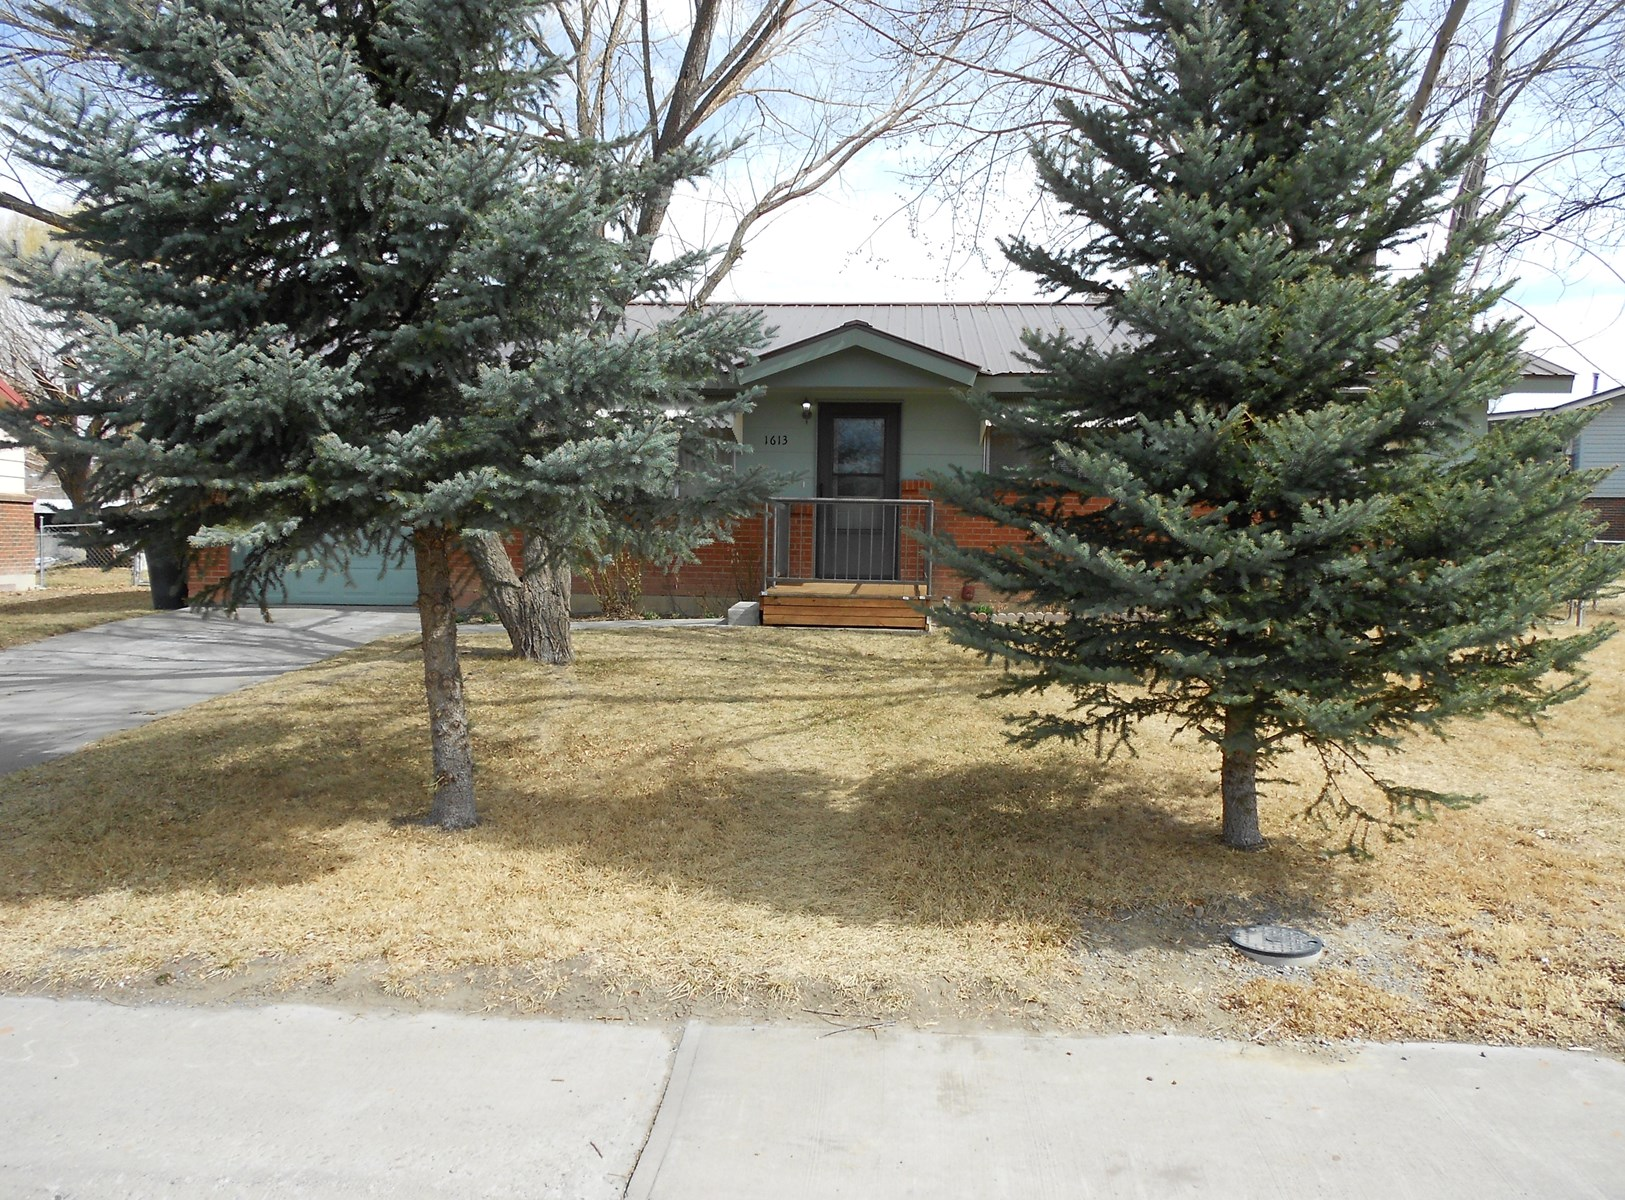 Home For Sale in Town Close to Parks Montrose Colorado